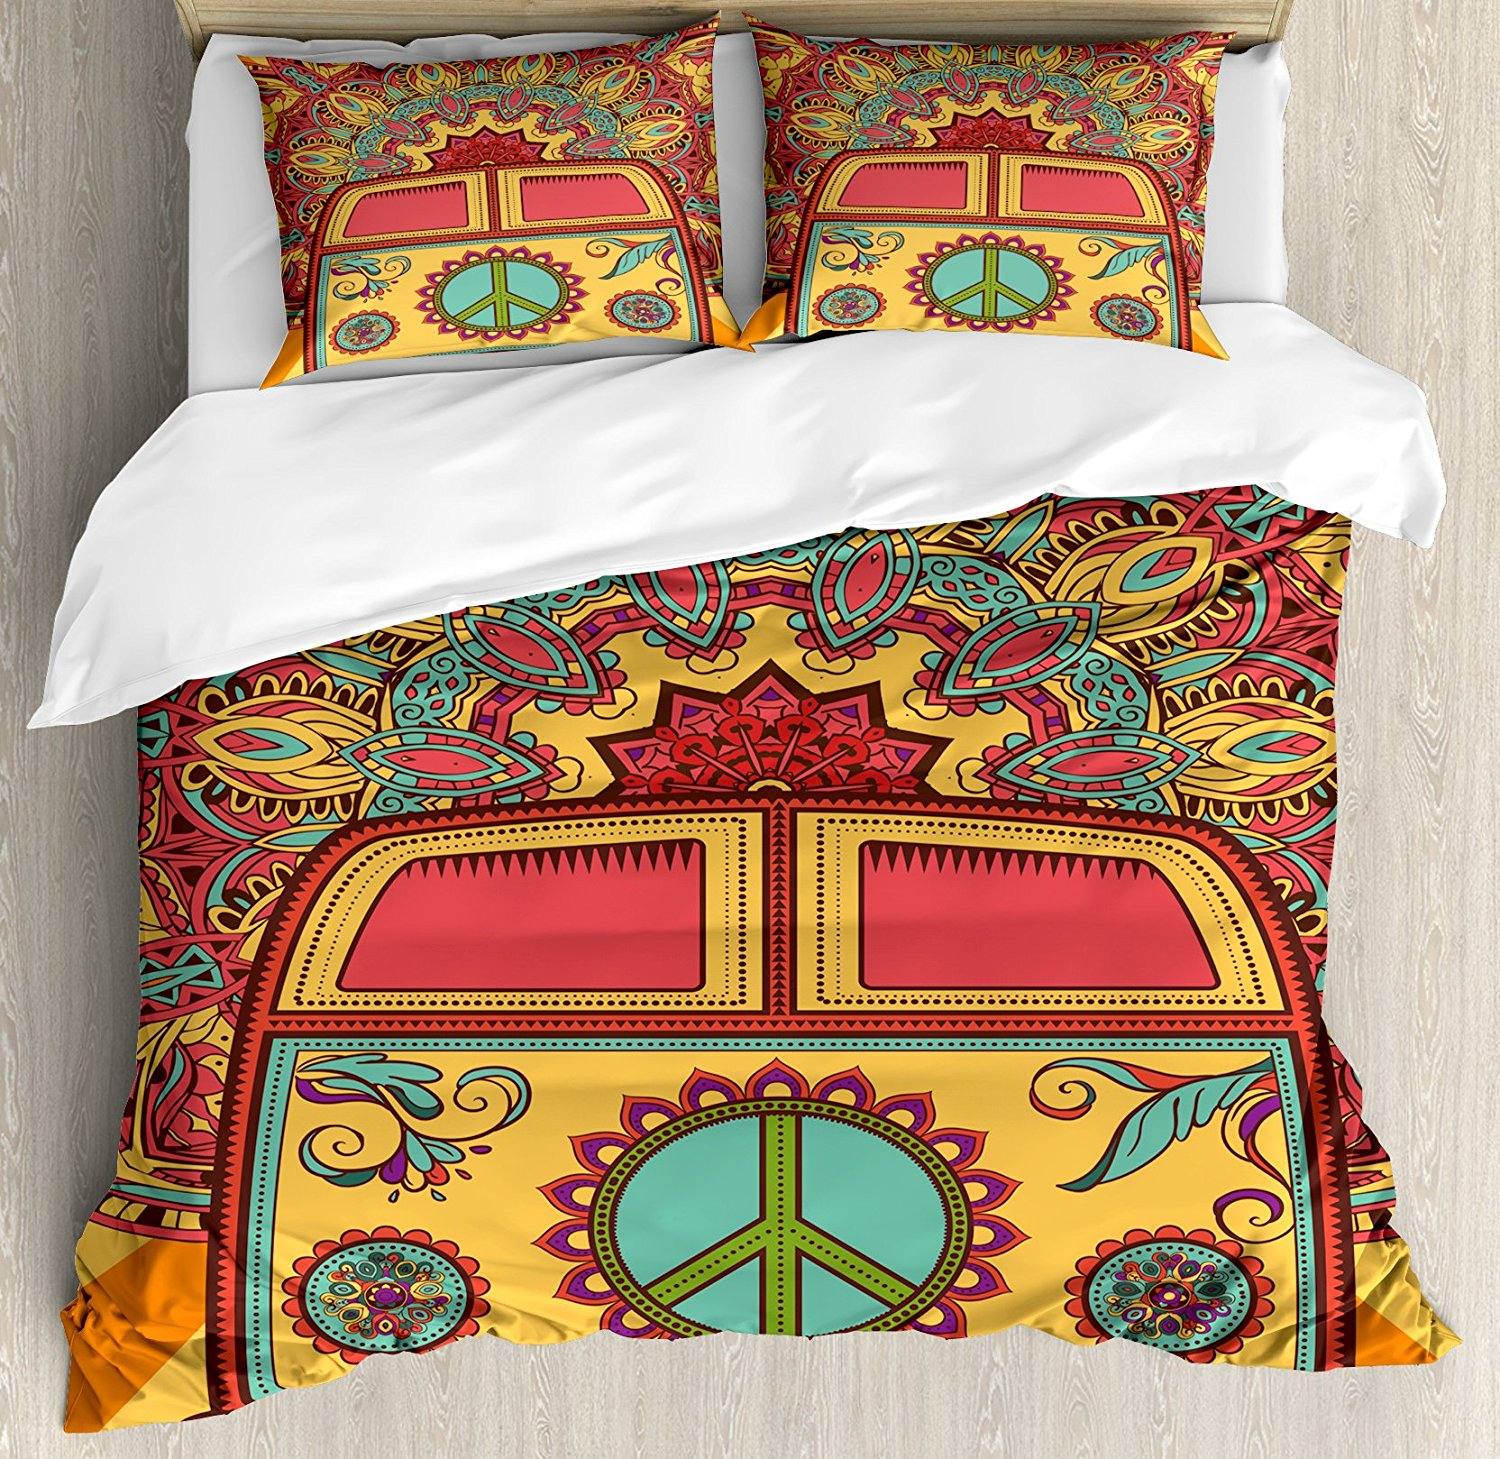 70s Party Decorations Duvet Cover Set Hippie Vintage Mini Van Ornamental Backdrop Peace Sign Decorative 4 Piece Bedding Set - 1